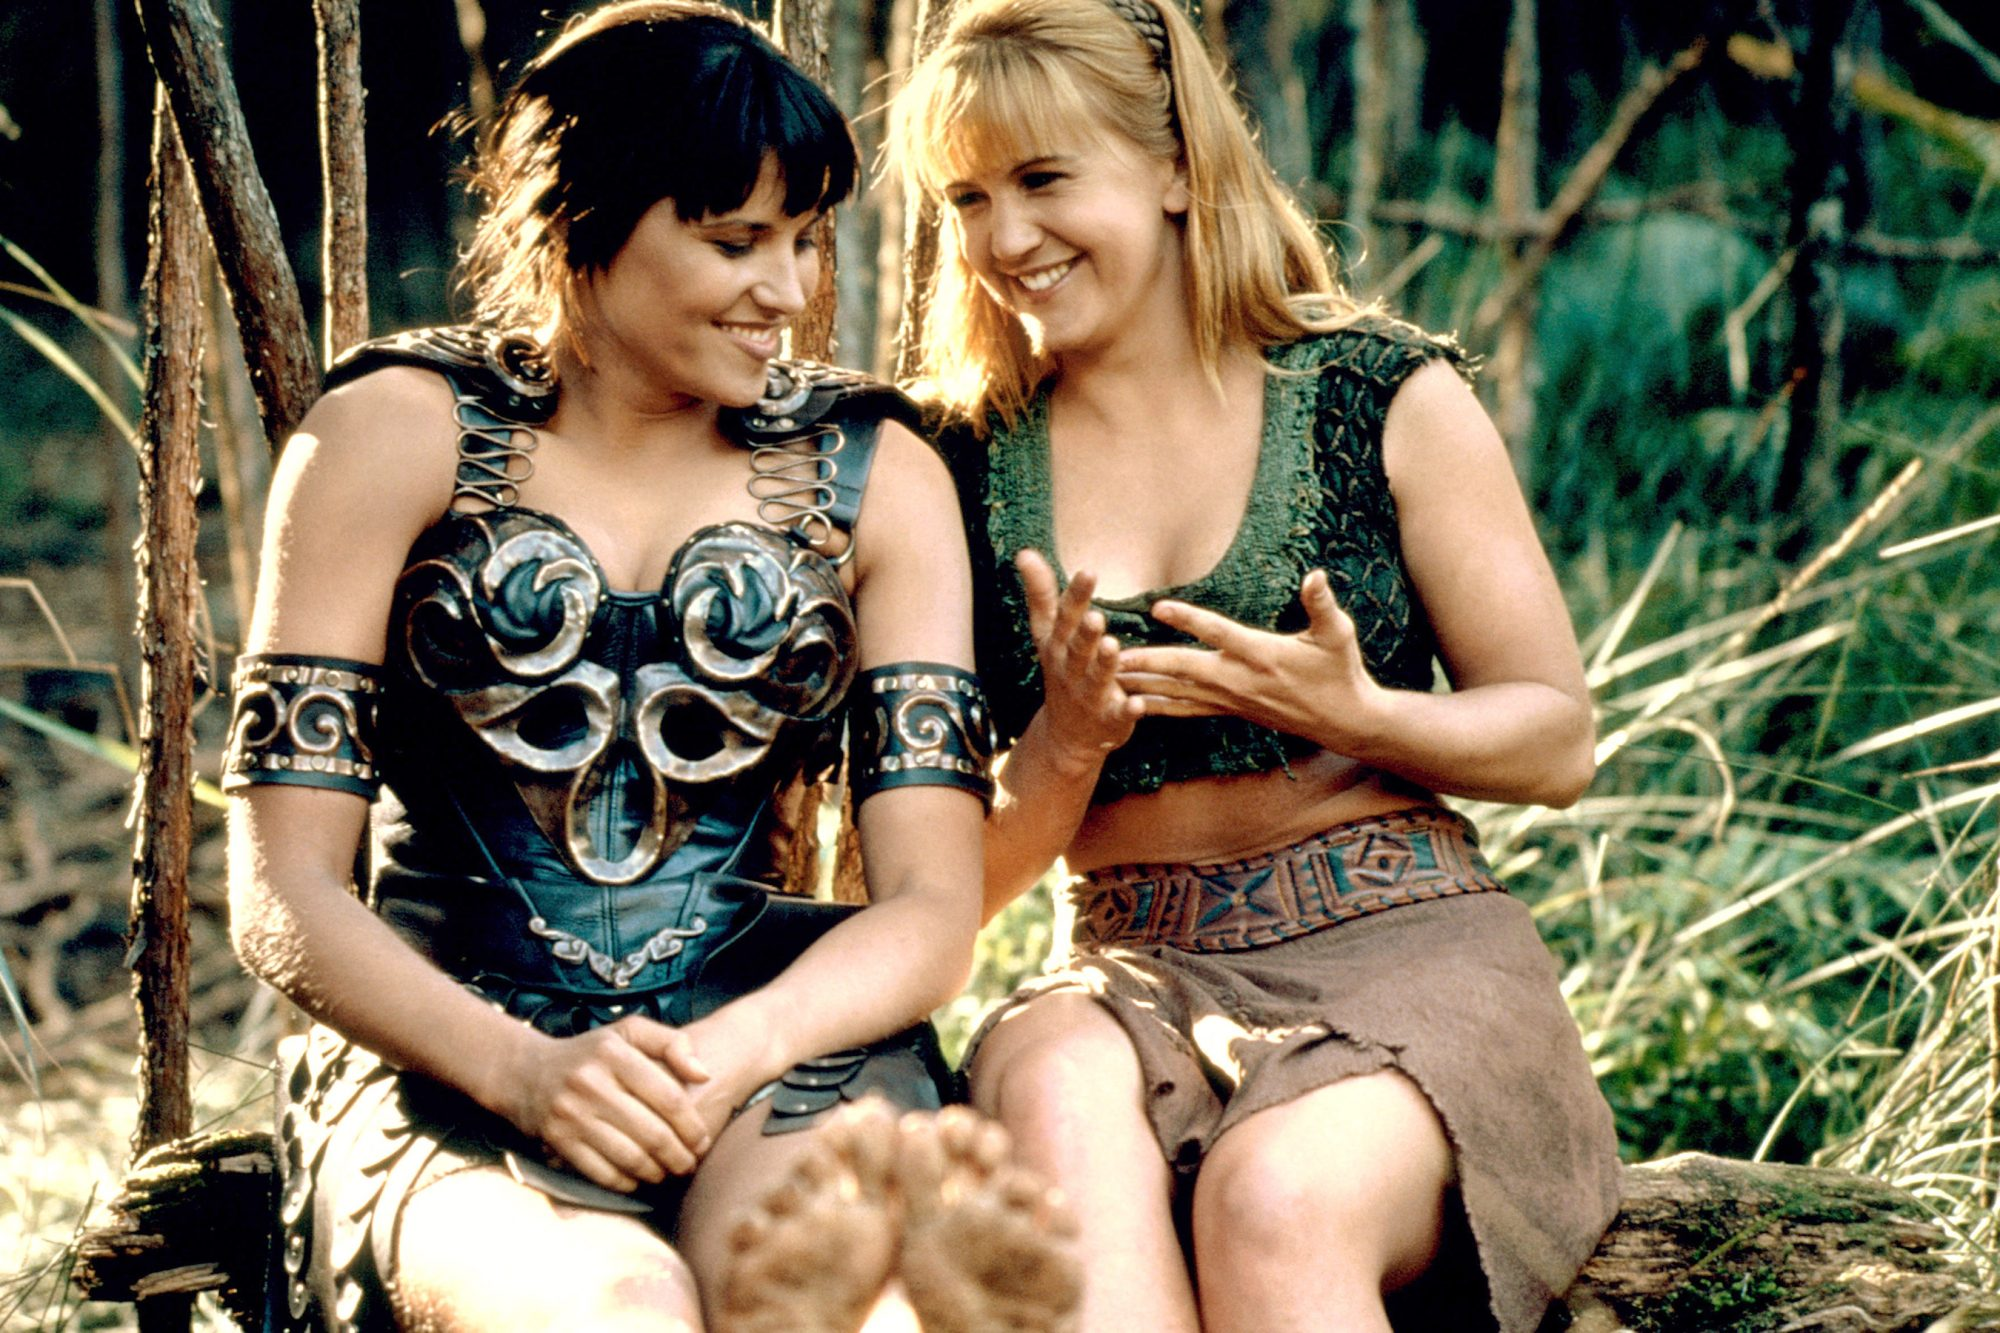 XENA: WARRIOR PRINCESS, (from left): Lucy Lawless, Renee O'Connor, 'A Day In The Life', (Season 2,